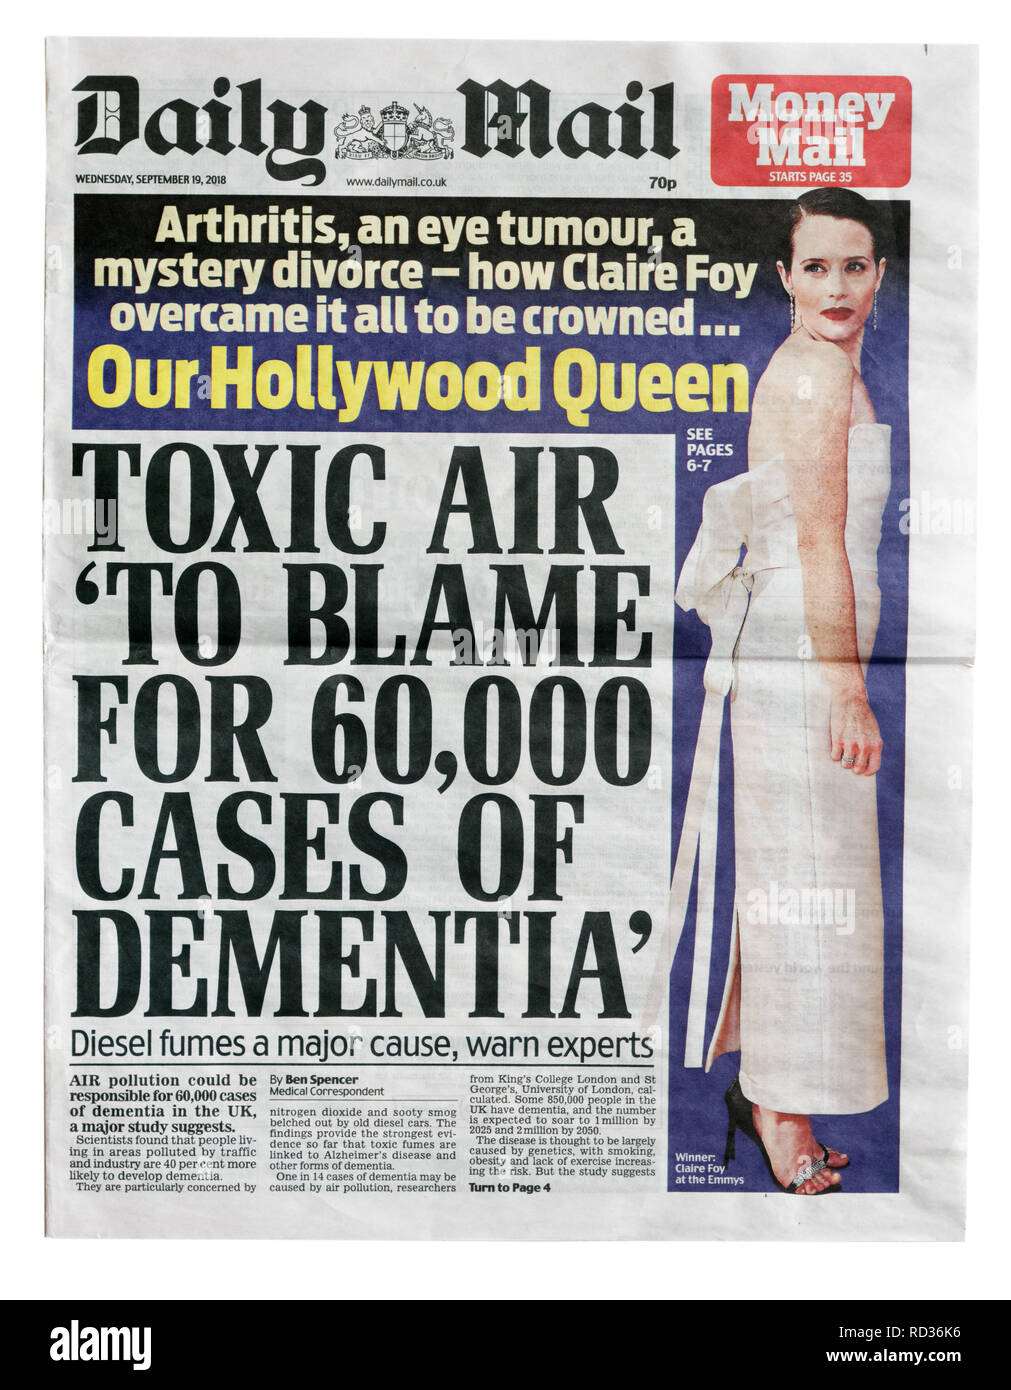 The front page of the Daily Mail from September 19 2108 about air pollution and diesel fumes being linked to demetia - Stock Image